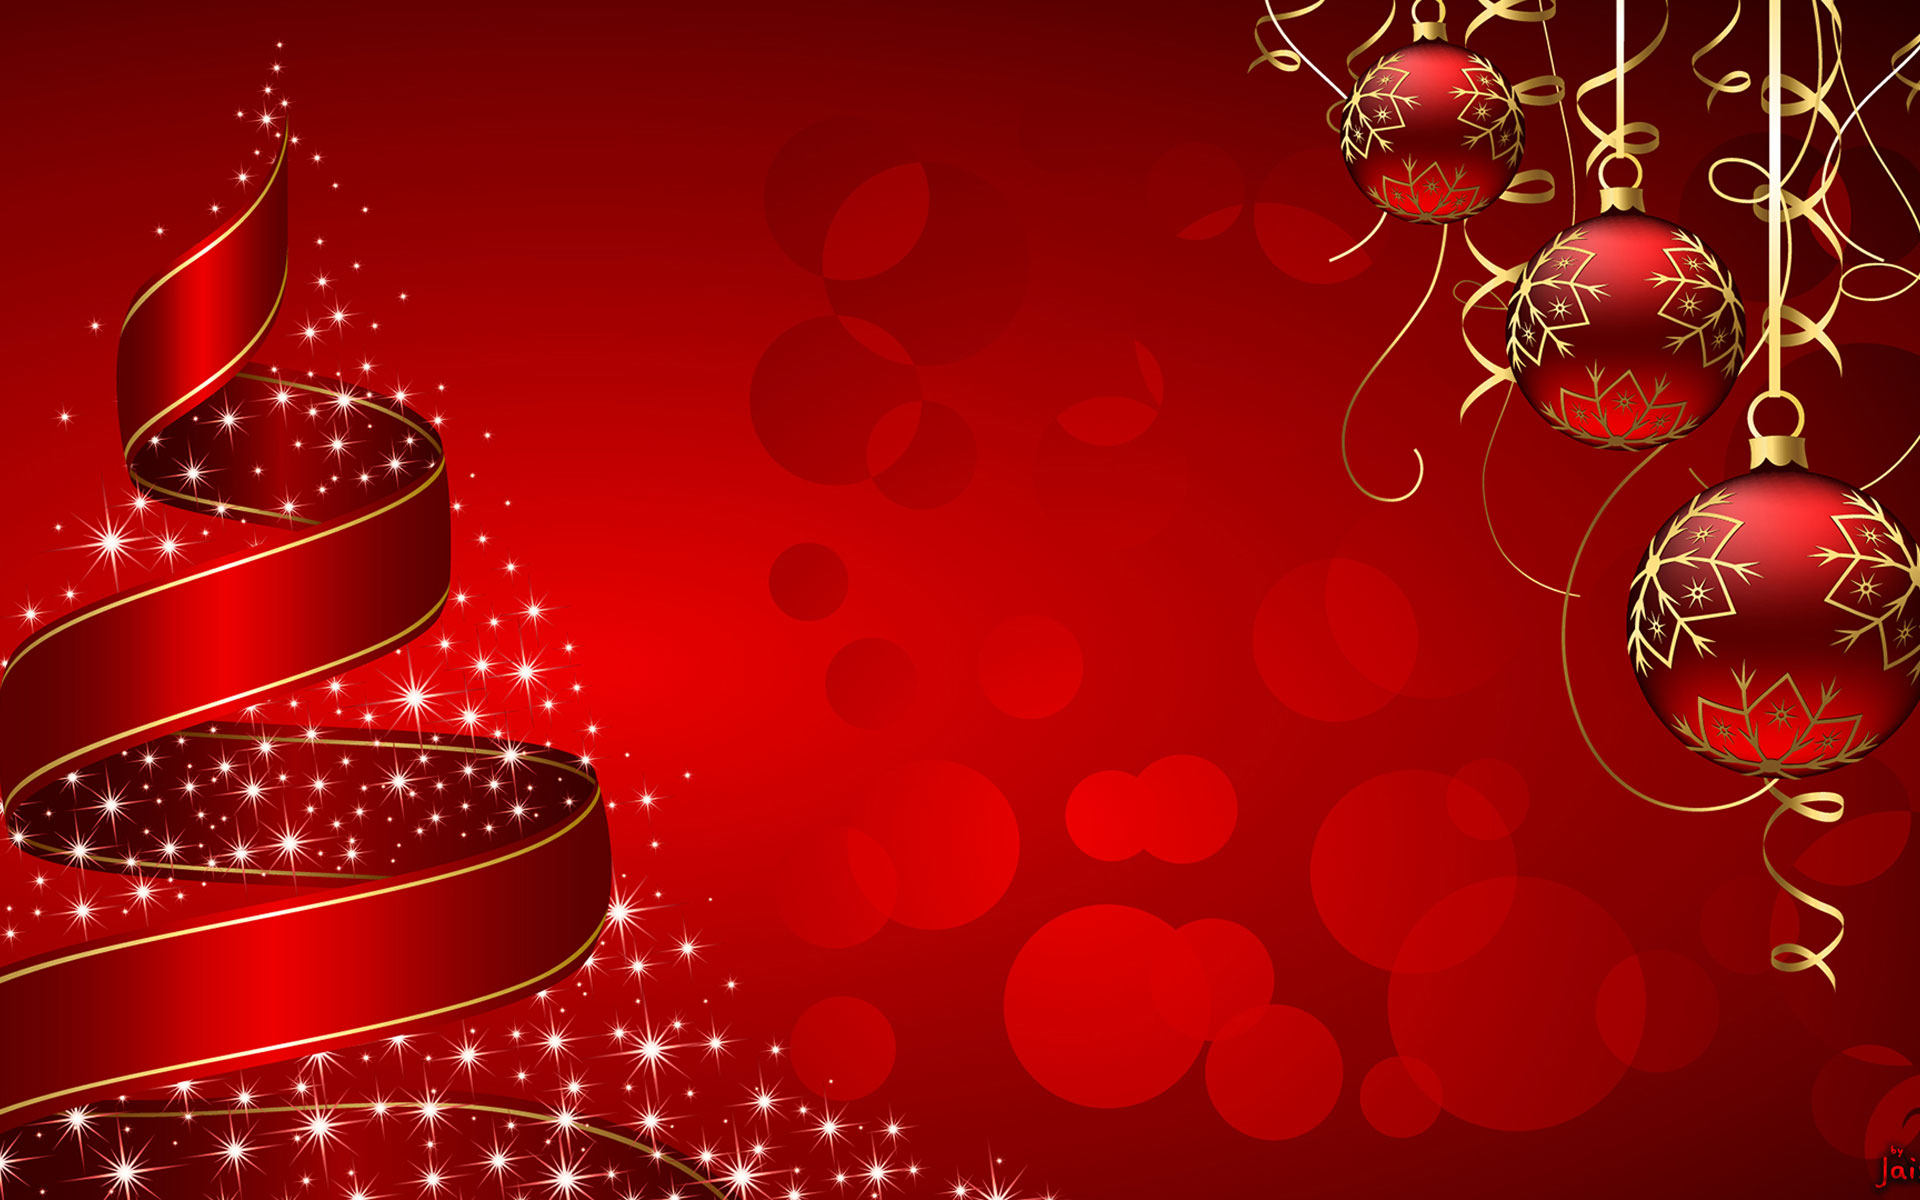 Collection of Christmas Backgrounds Free on HDWallpapers